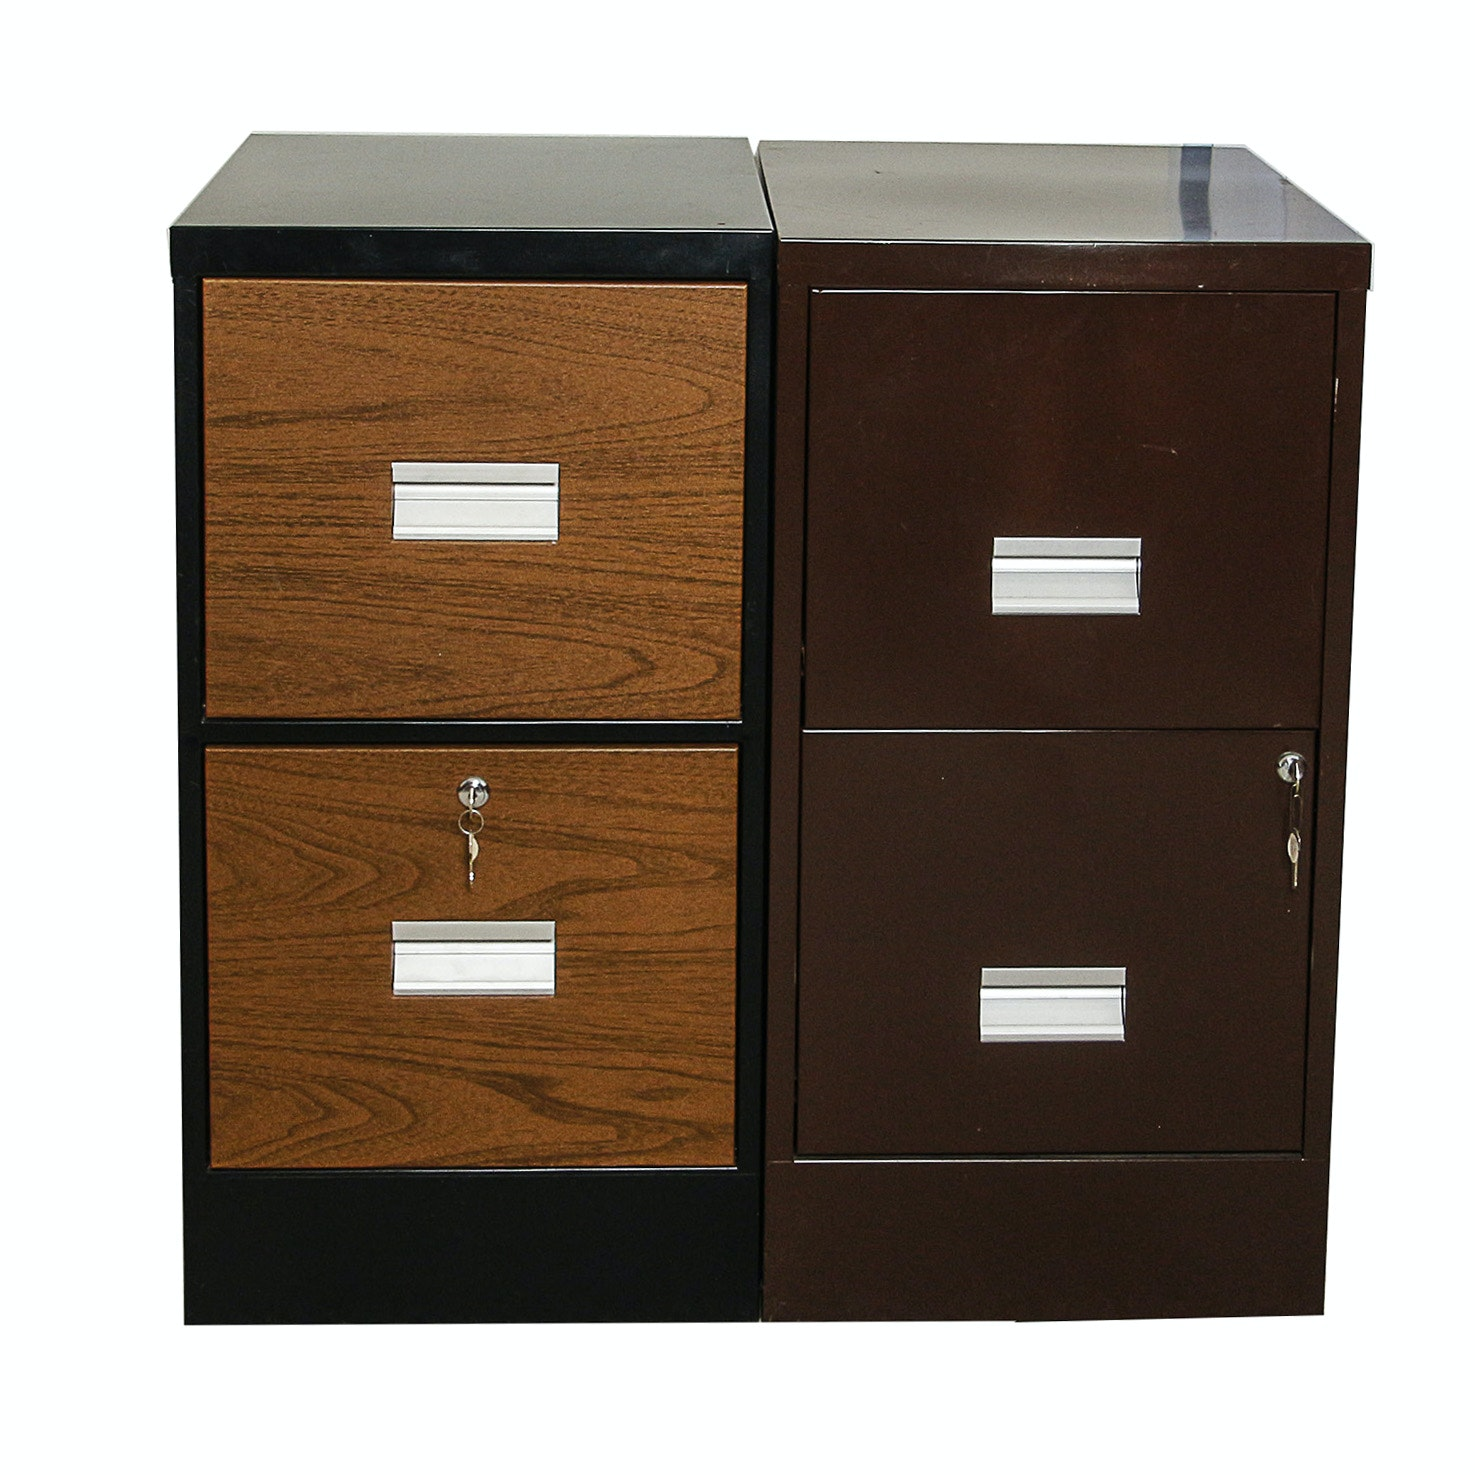 Metal Two-Drawer File Cabinets